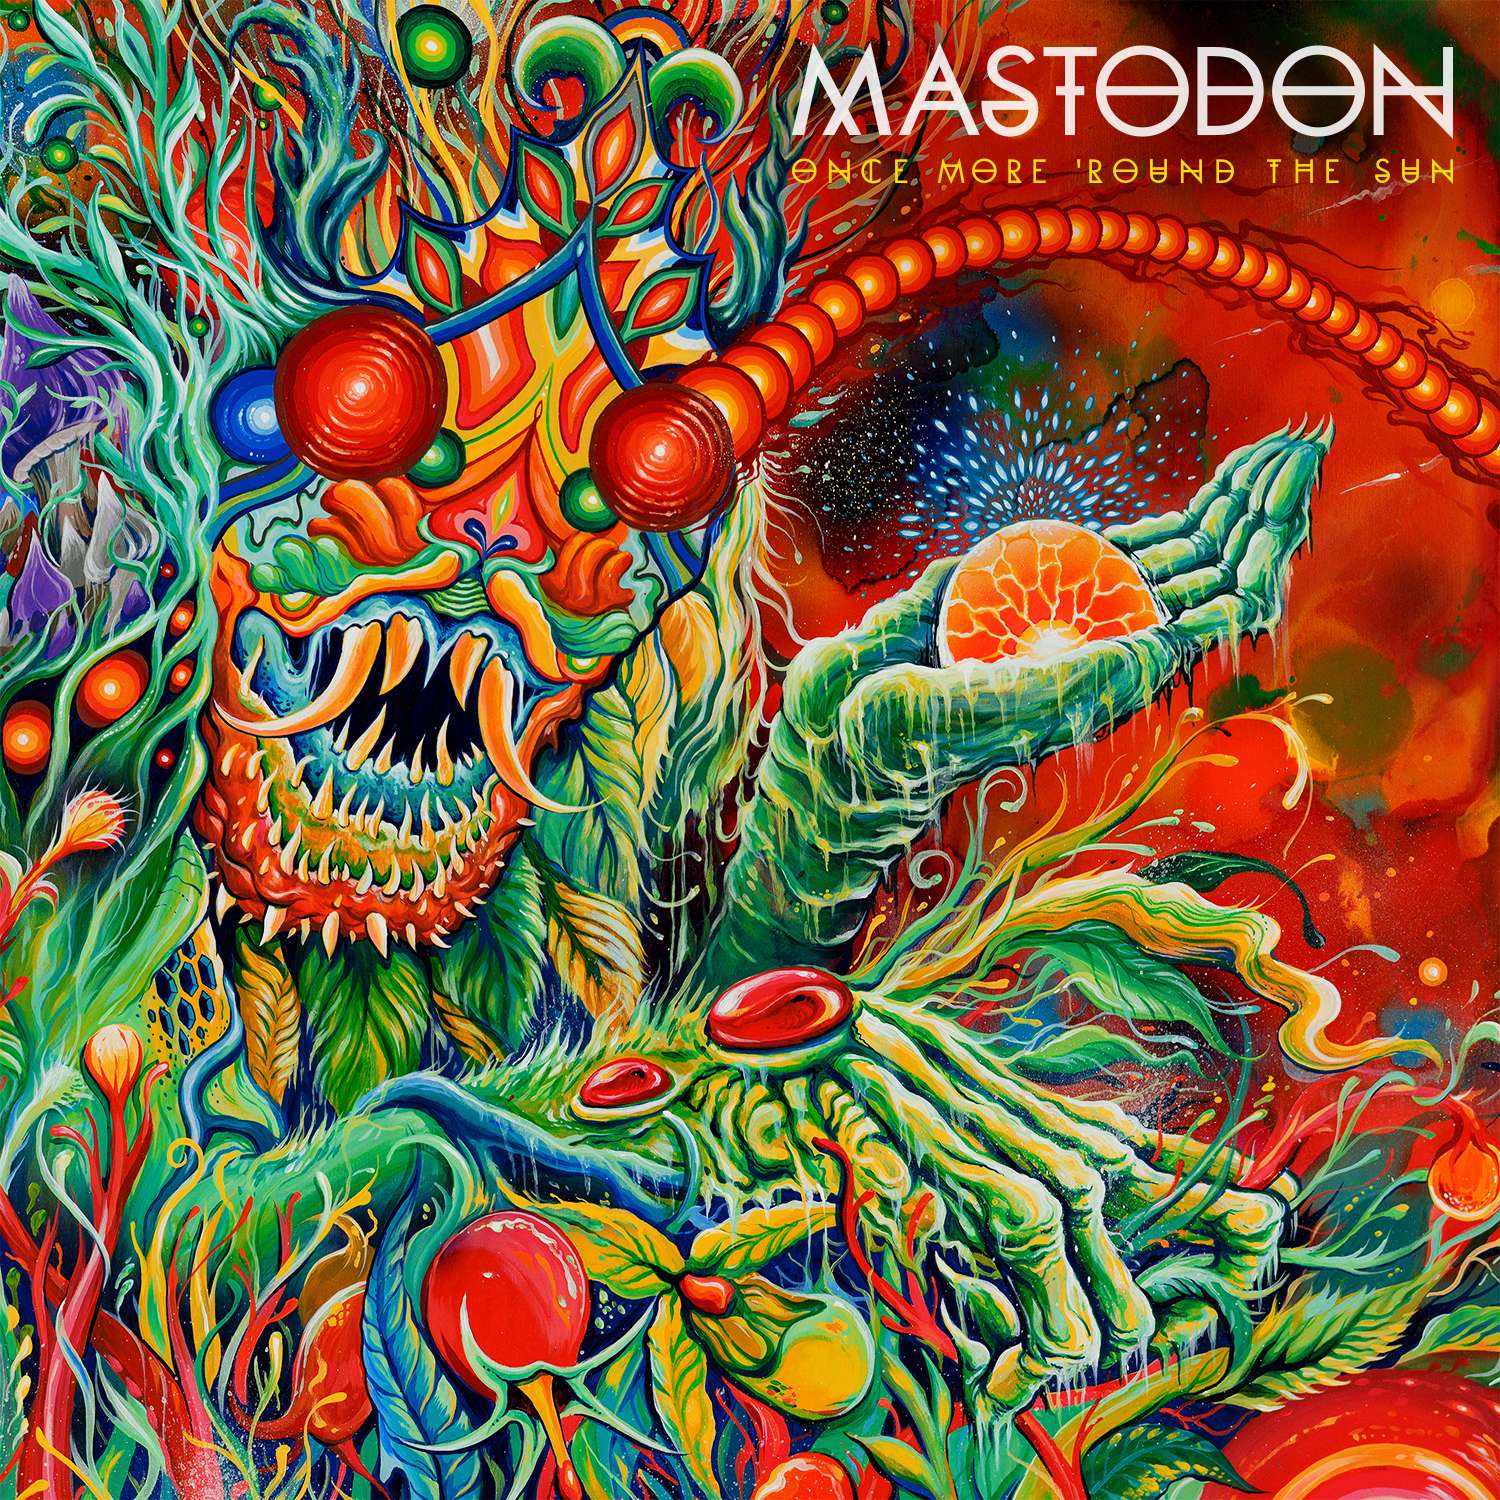 MASTODON  Once More Around The Sun     KEVIN: Buy It ANDRE: Buy It ADAM: Buy It    Listen on:  Rdio  |  Spotify